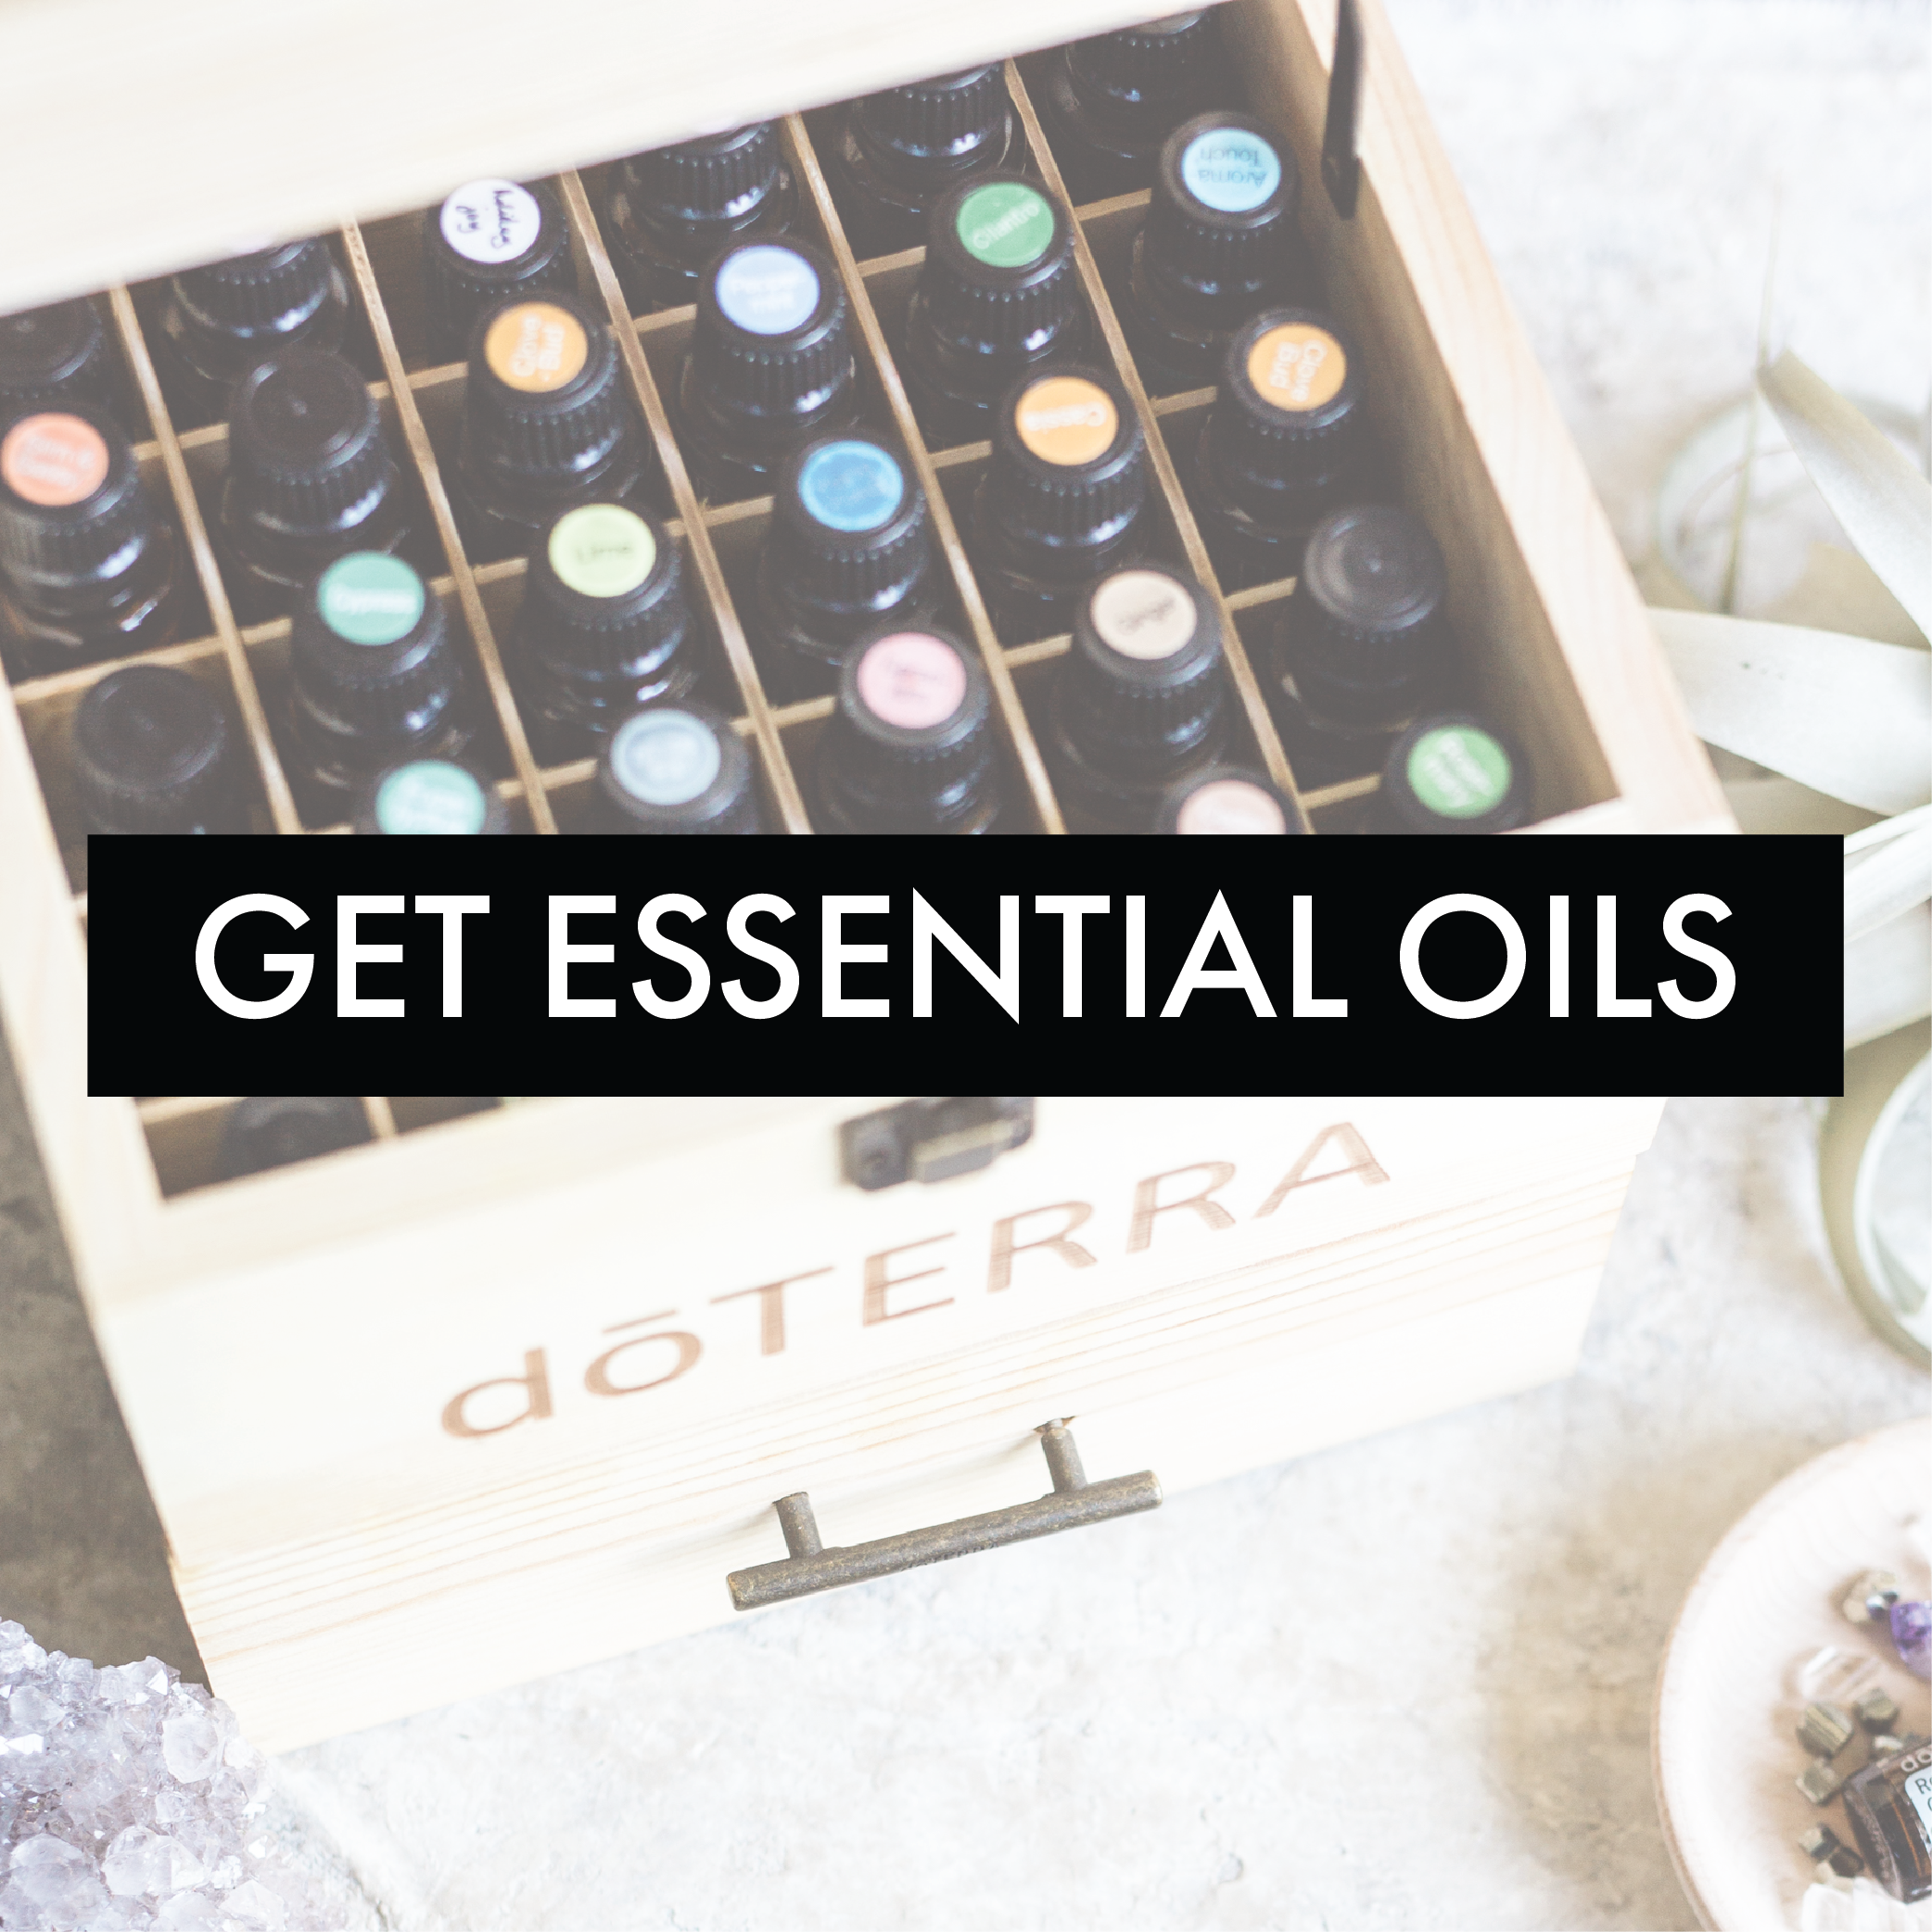 GET doTERRA ESSENTIAL OILS